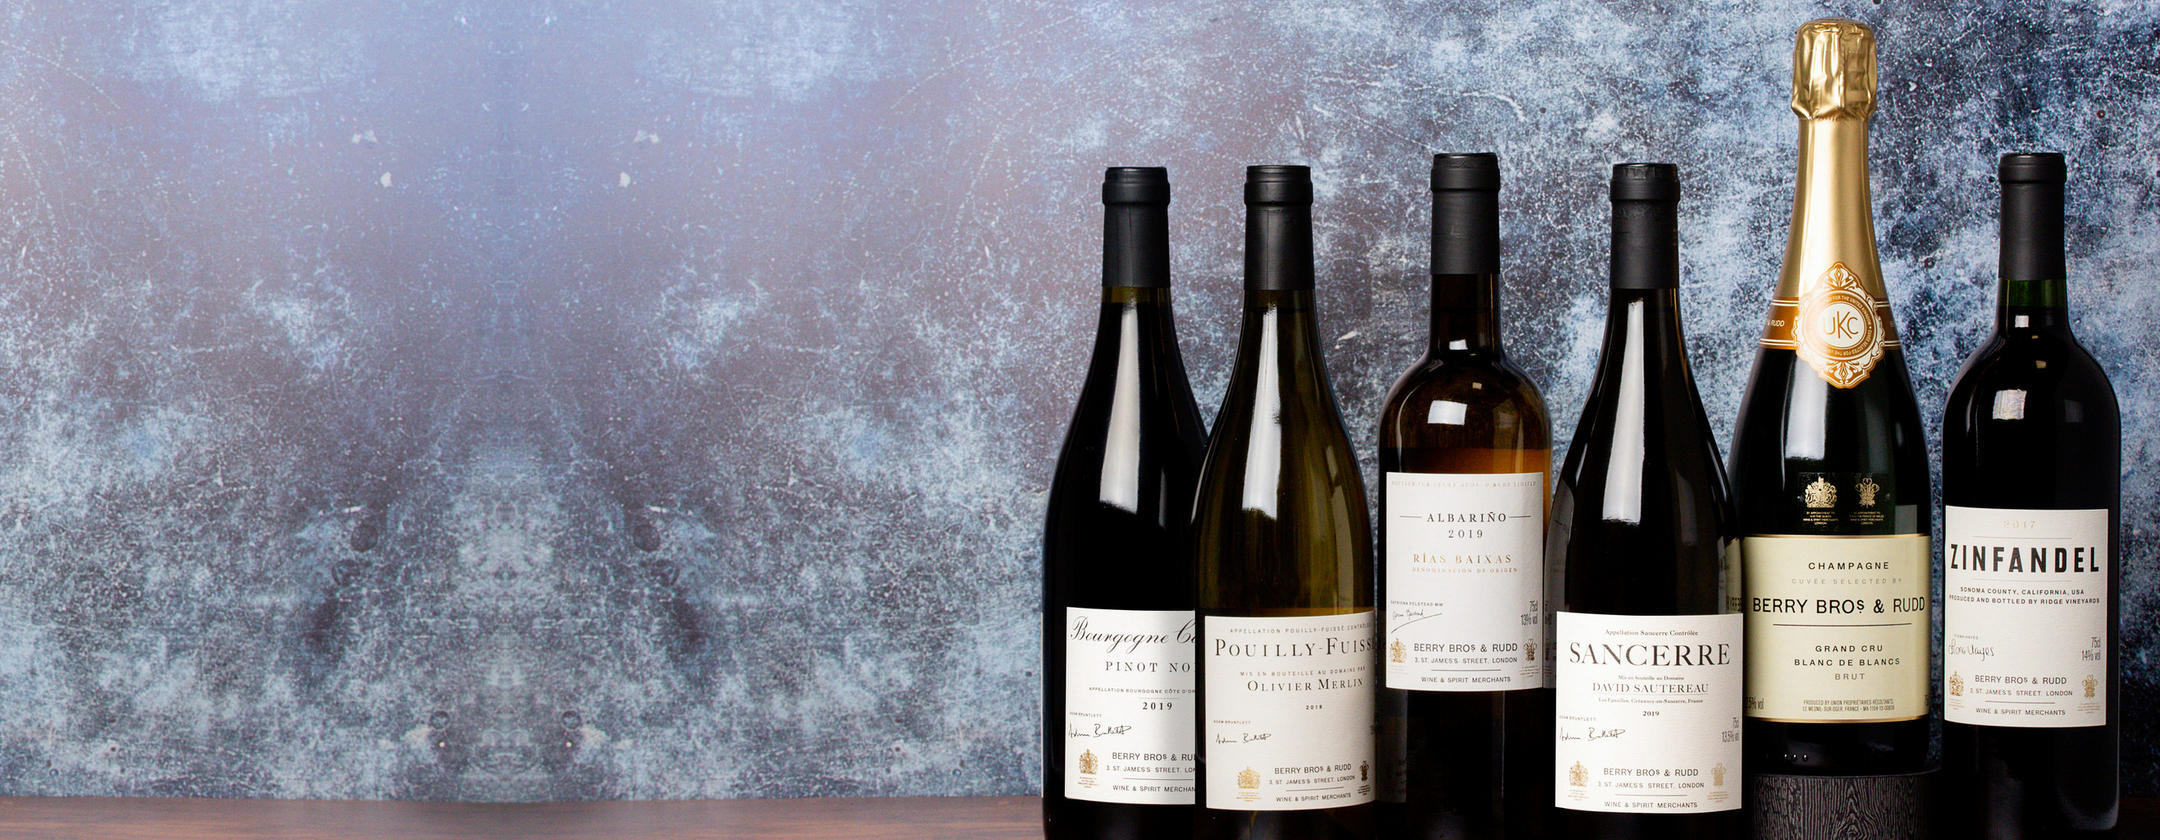 Highlights from our Own Selection  _ The stories behind our wines